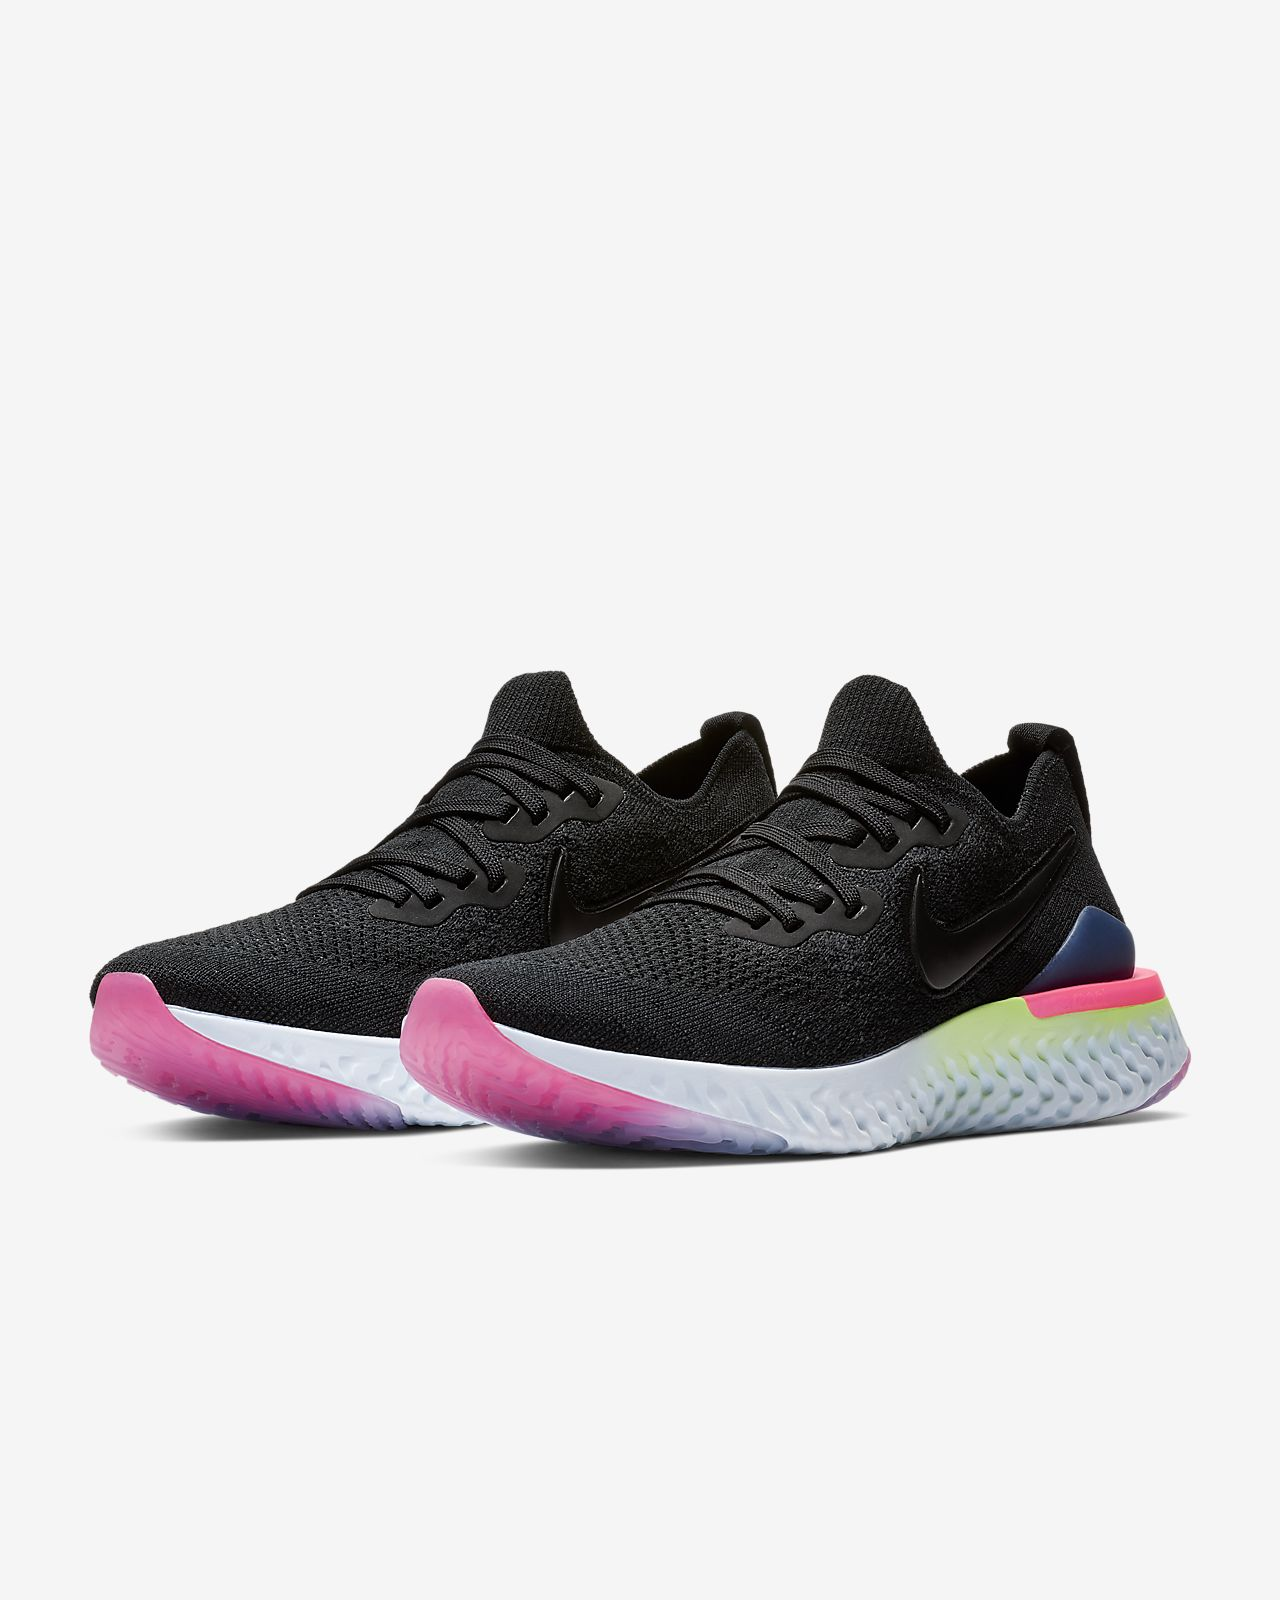 11445473b656 Nike Epic React Flyknit 2 Women s Running Shoe. Nike.com